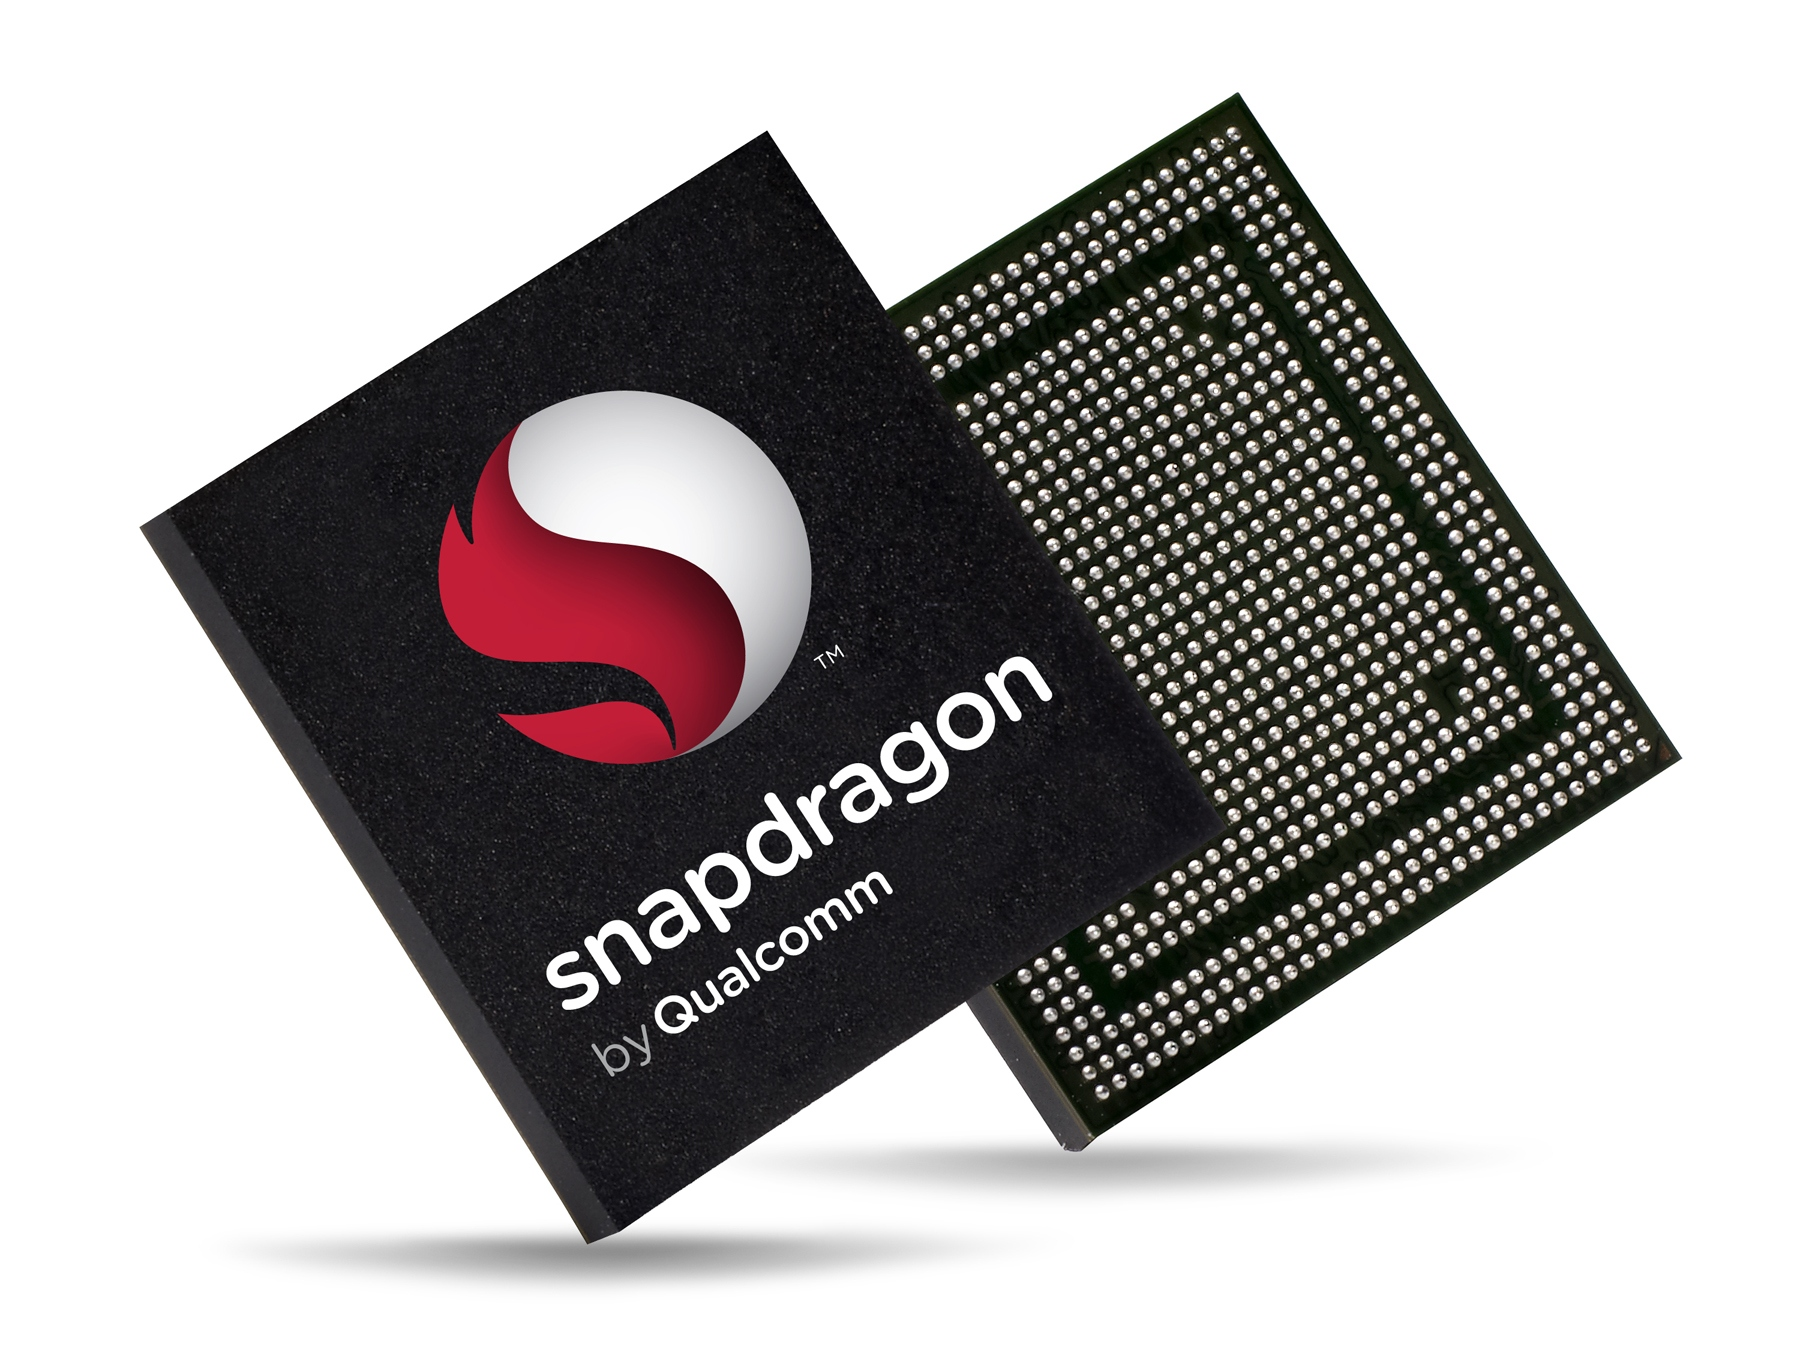 Qualcomm Snapdragon 855 SoC Announced | iGyaan Network